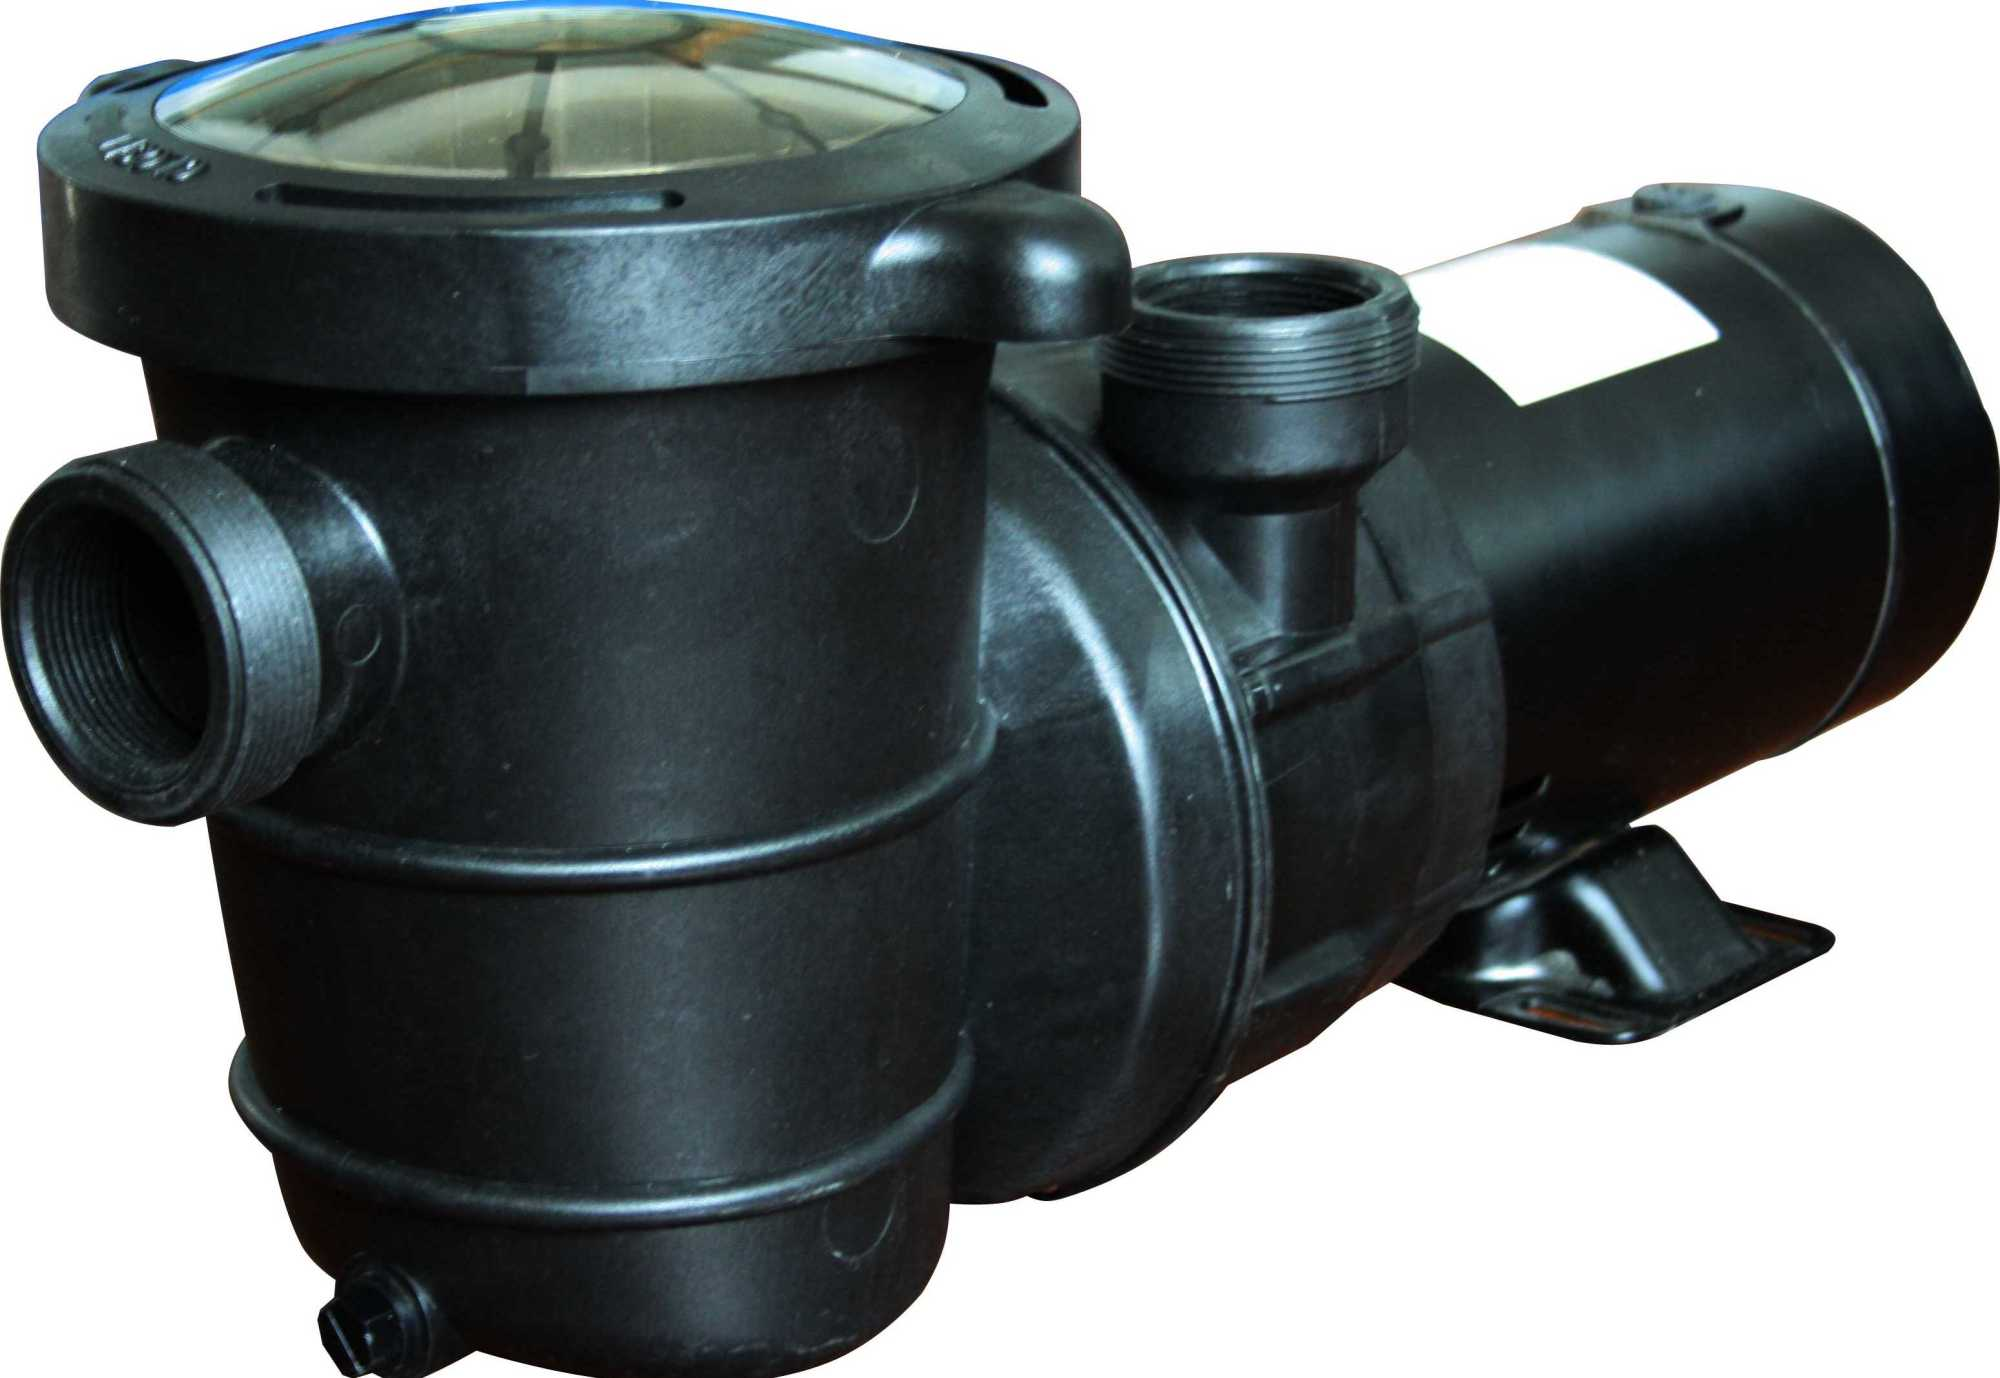 hight resolution of energy efficient 2 speed pump for above ground swimming pool 1 hp 115v walmart com